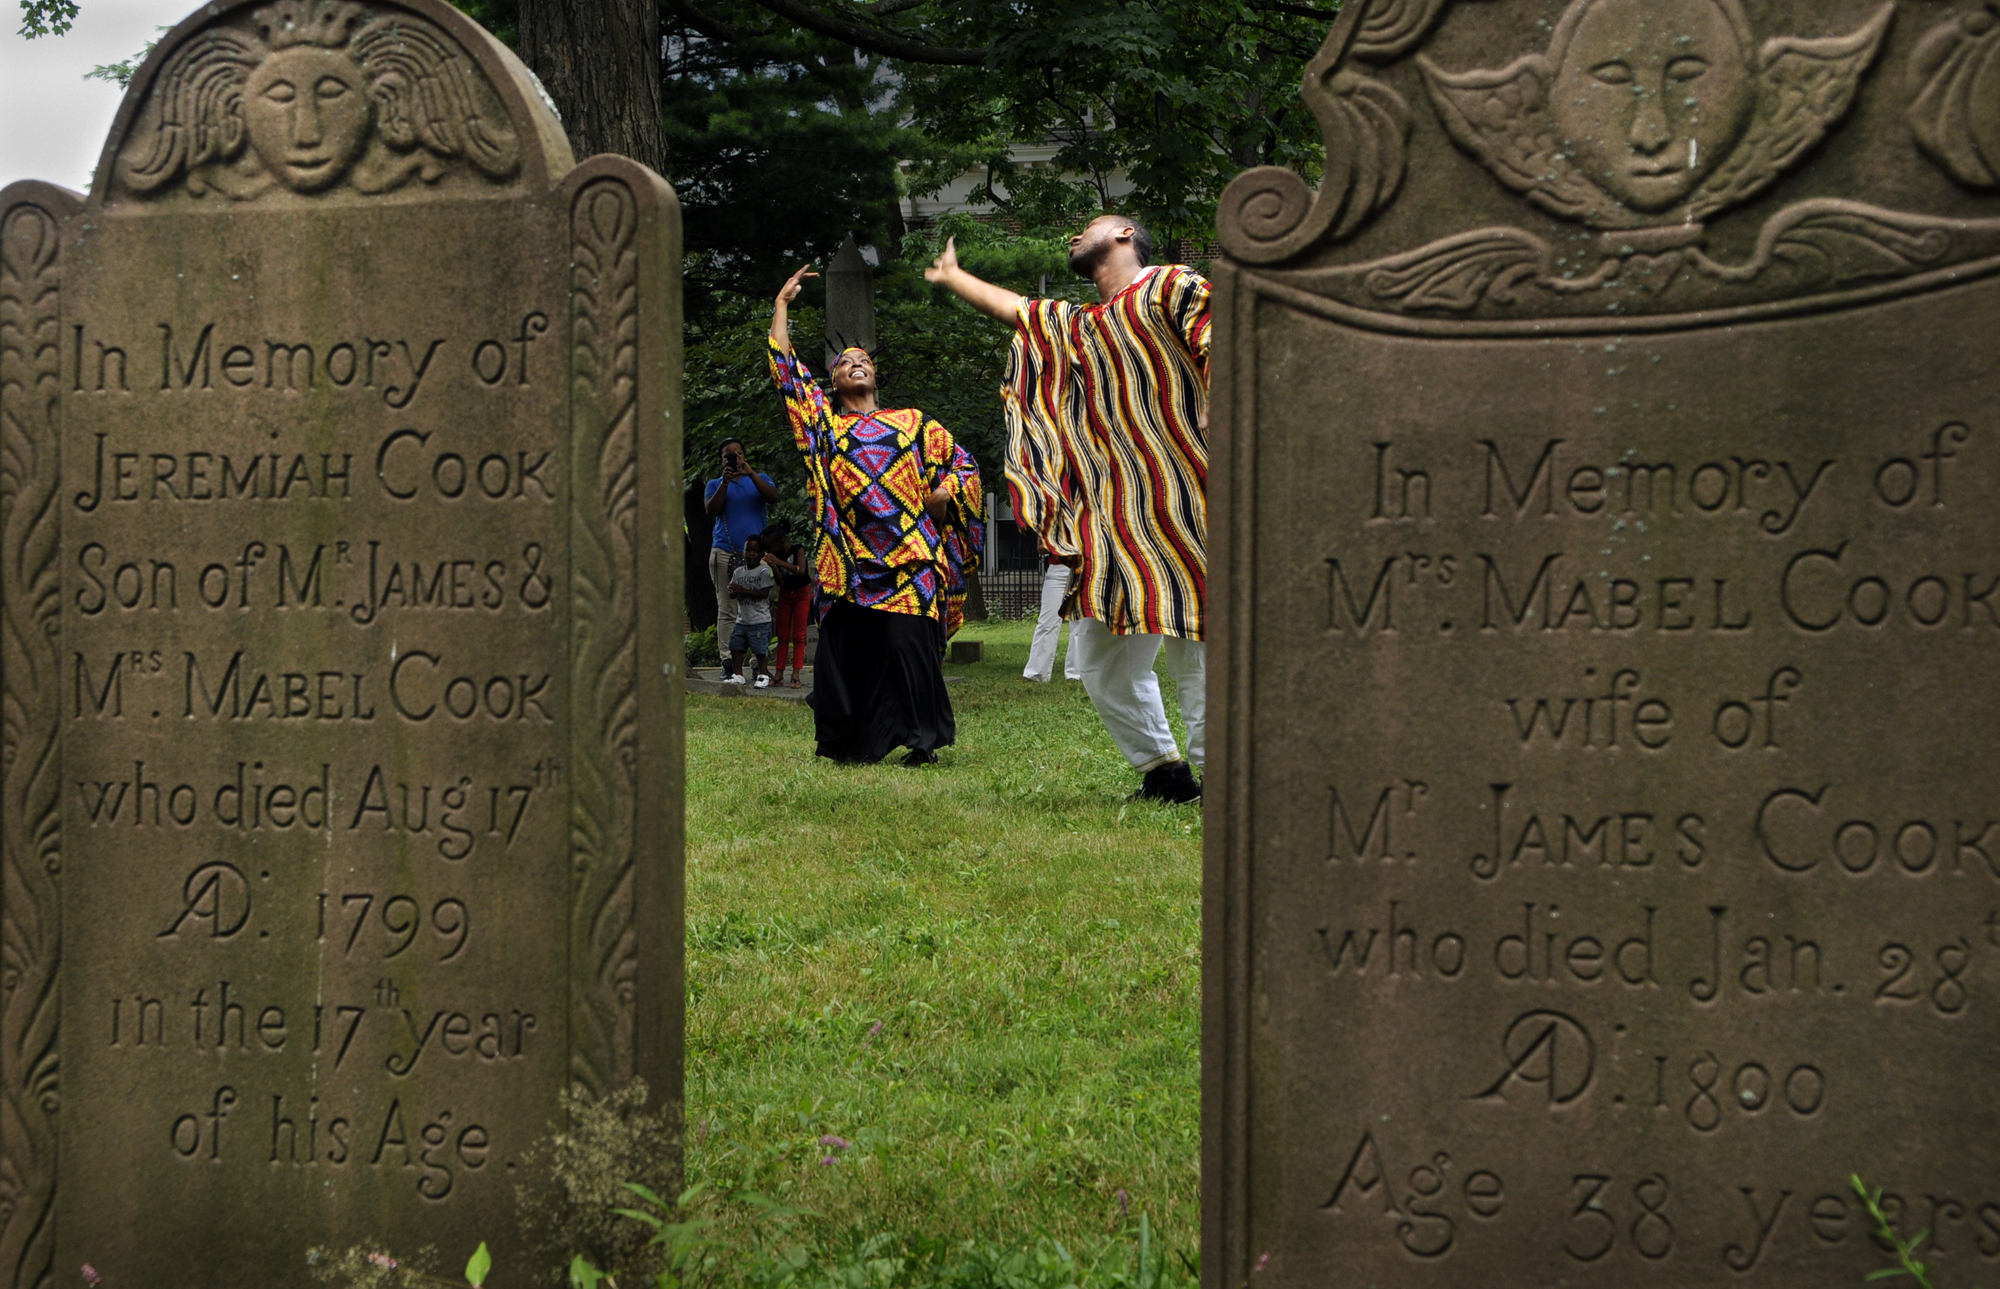 Melissa Craig of Hartford, left, and Robert Byrd of New Haven, performed an African dance among the ancient gravestones during their performance. More than two dozen attended the interactive performance.